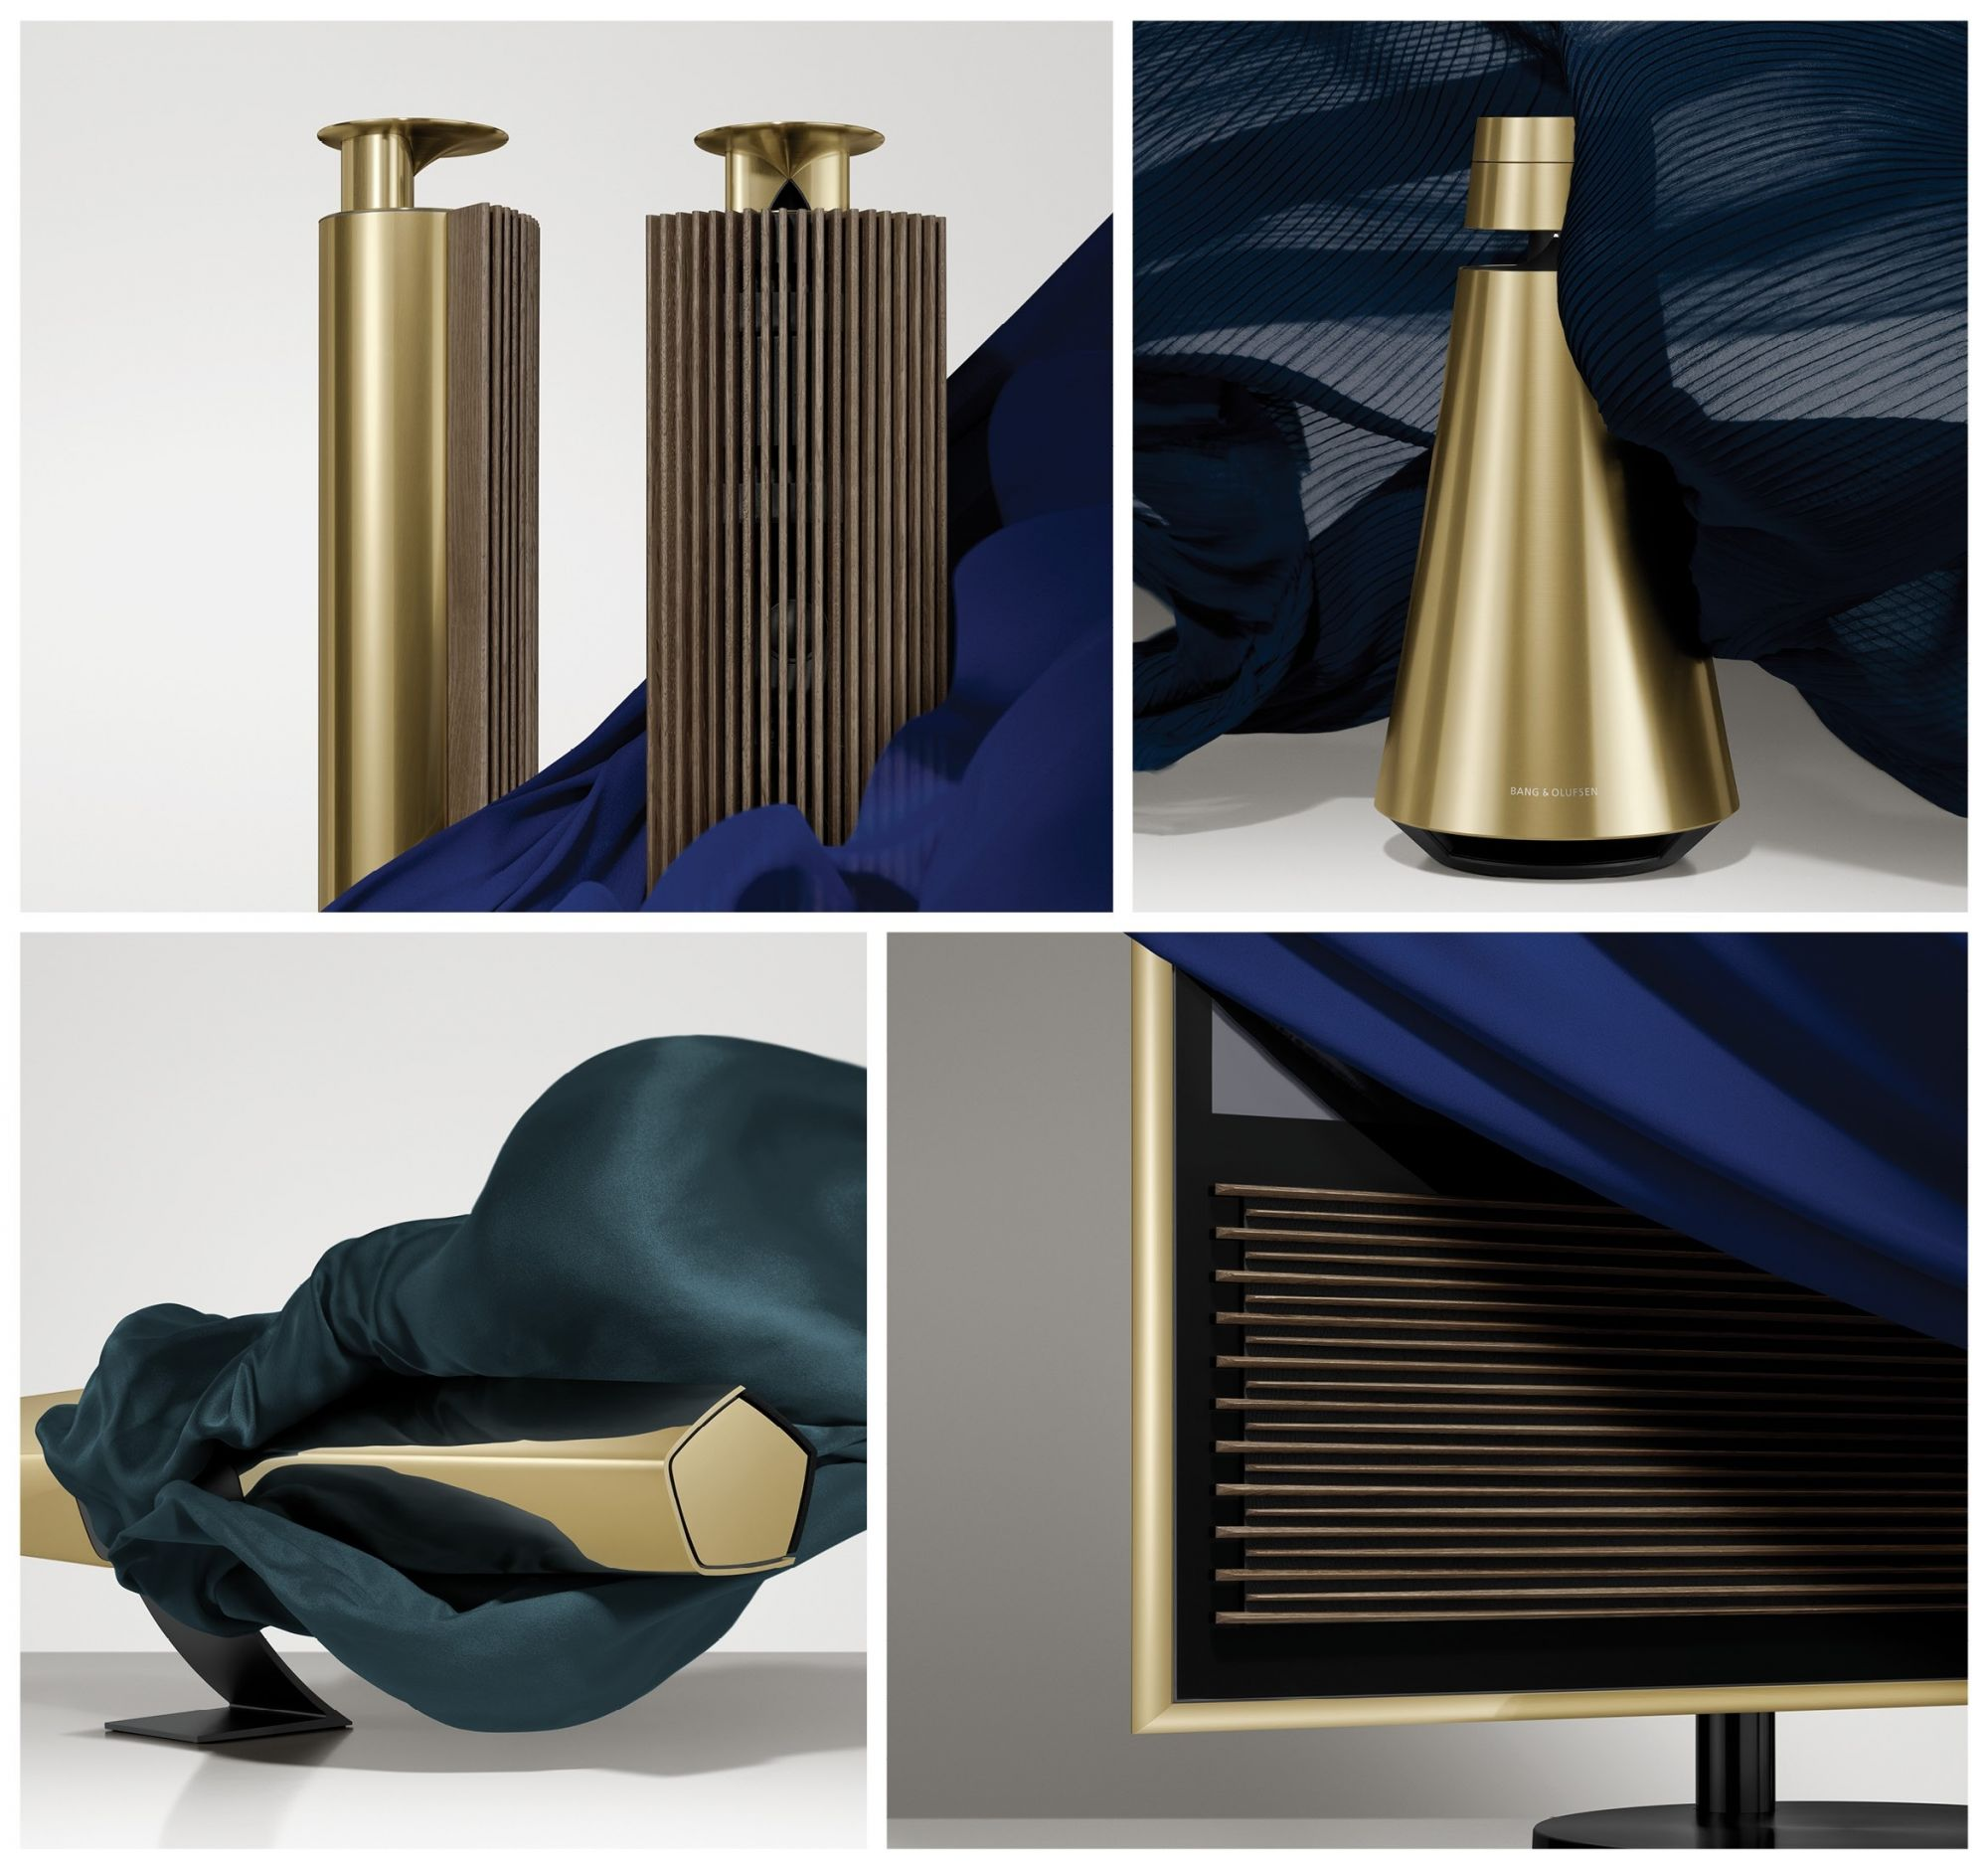 Bang & Olufsen's New Collection Matches Modern Technology With Art Deco Design